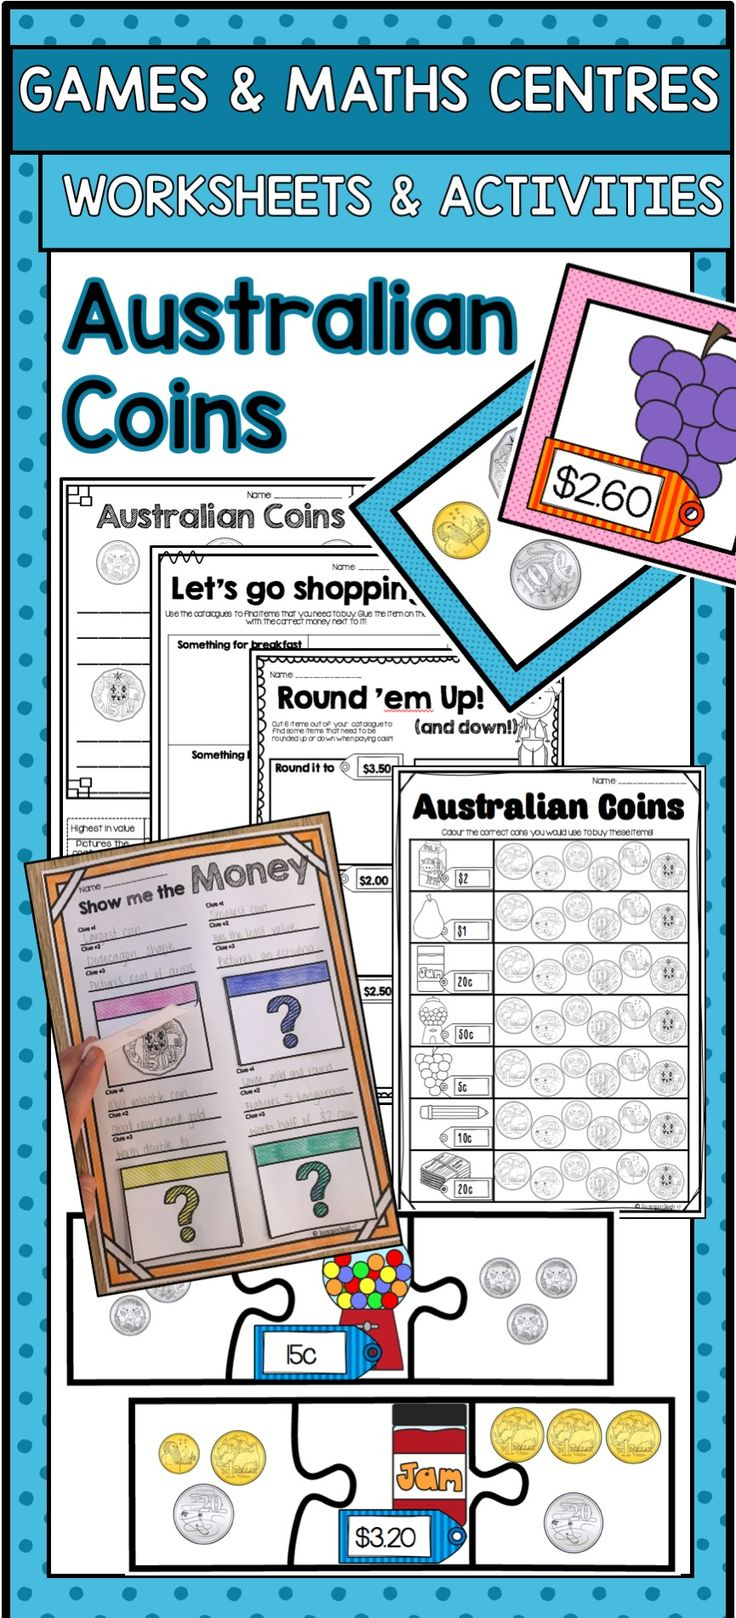 Australian money games, maths centres and worksheets!